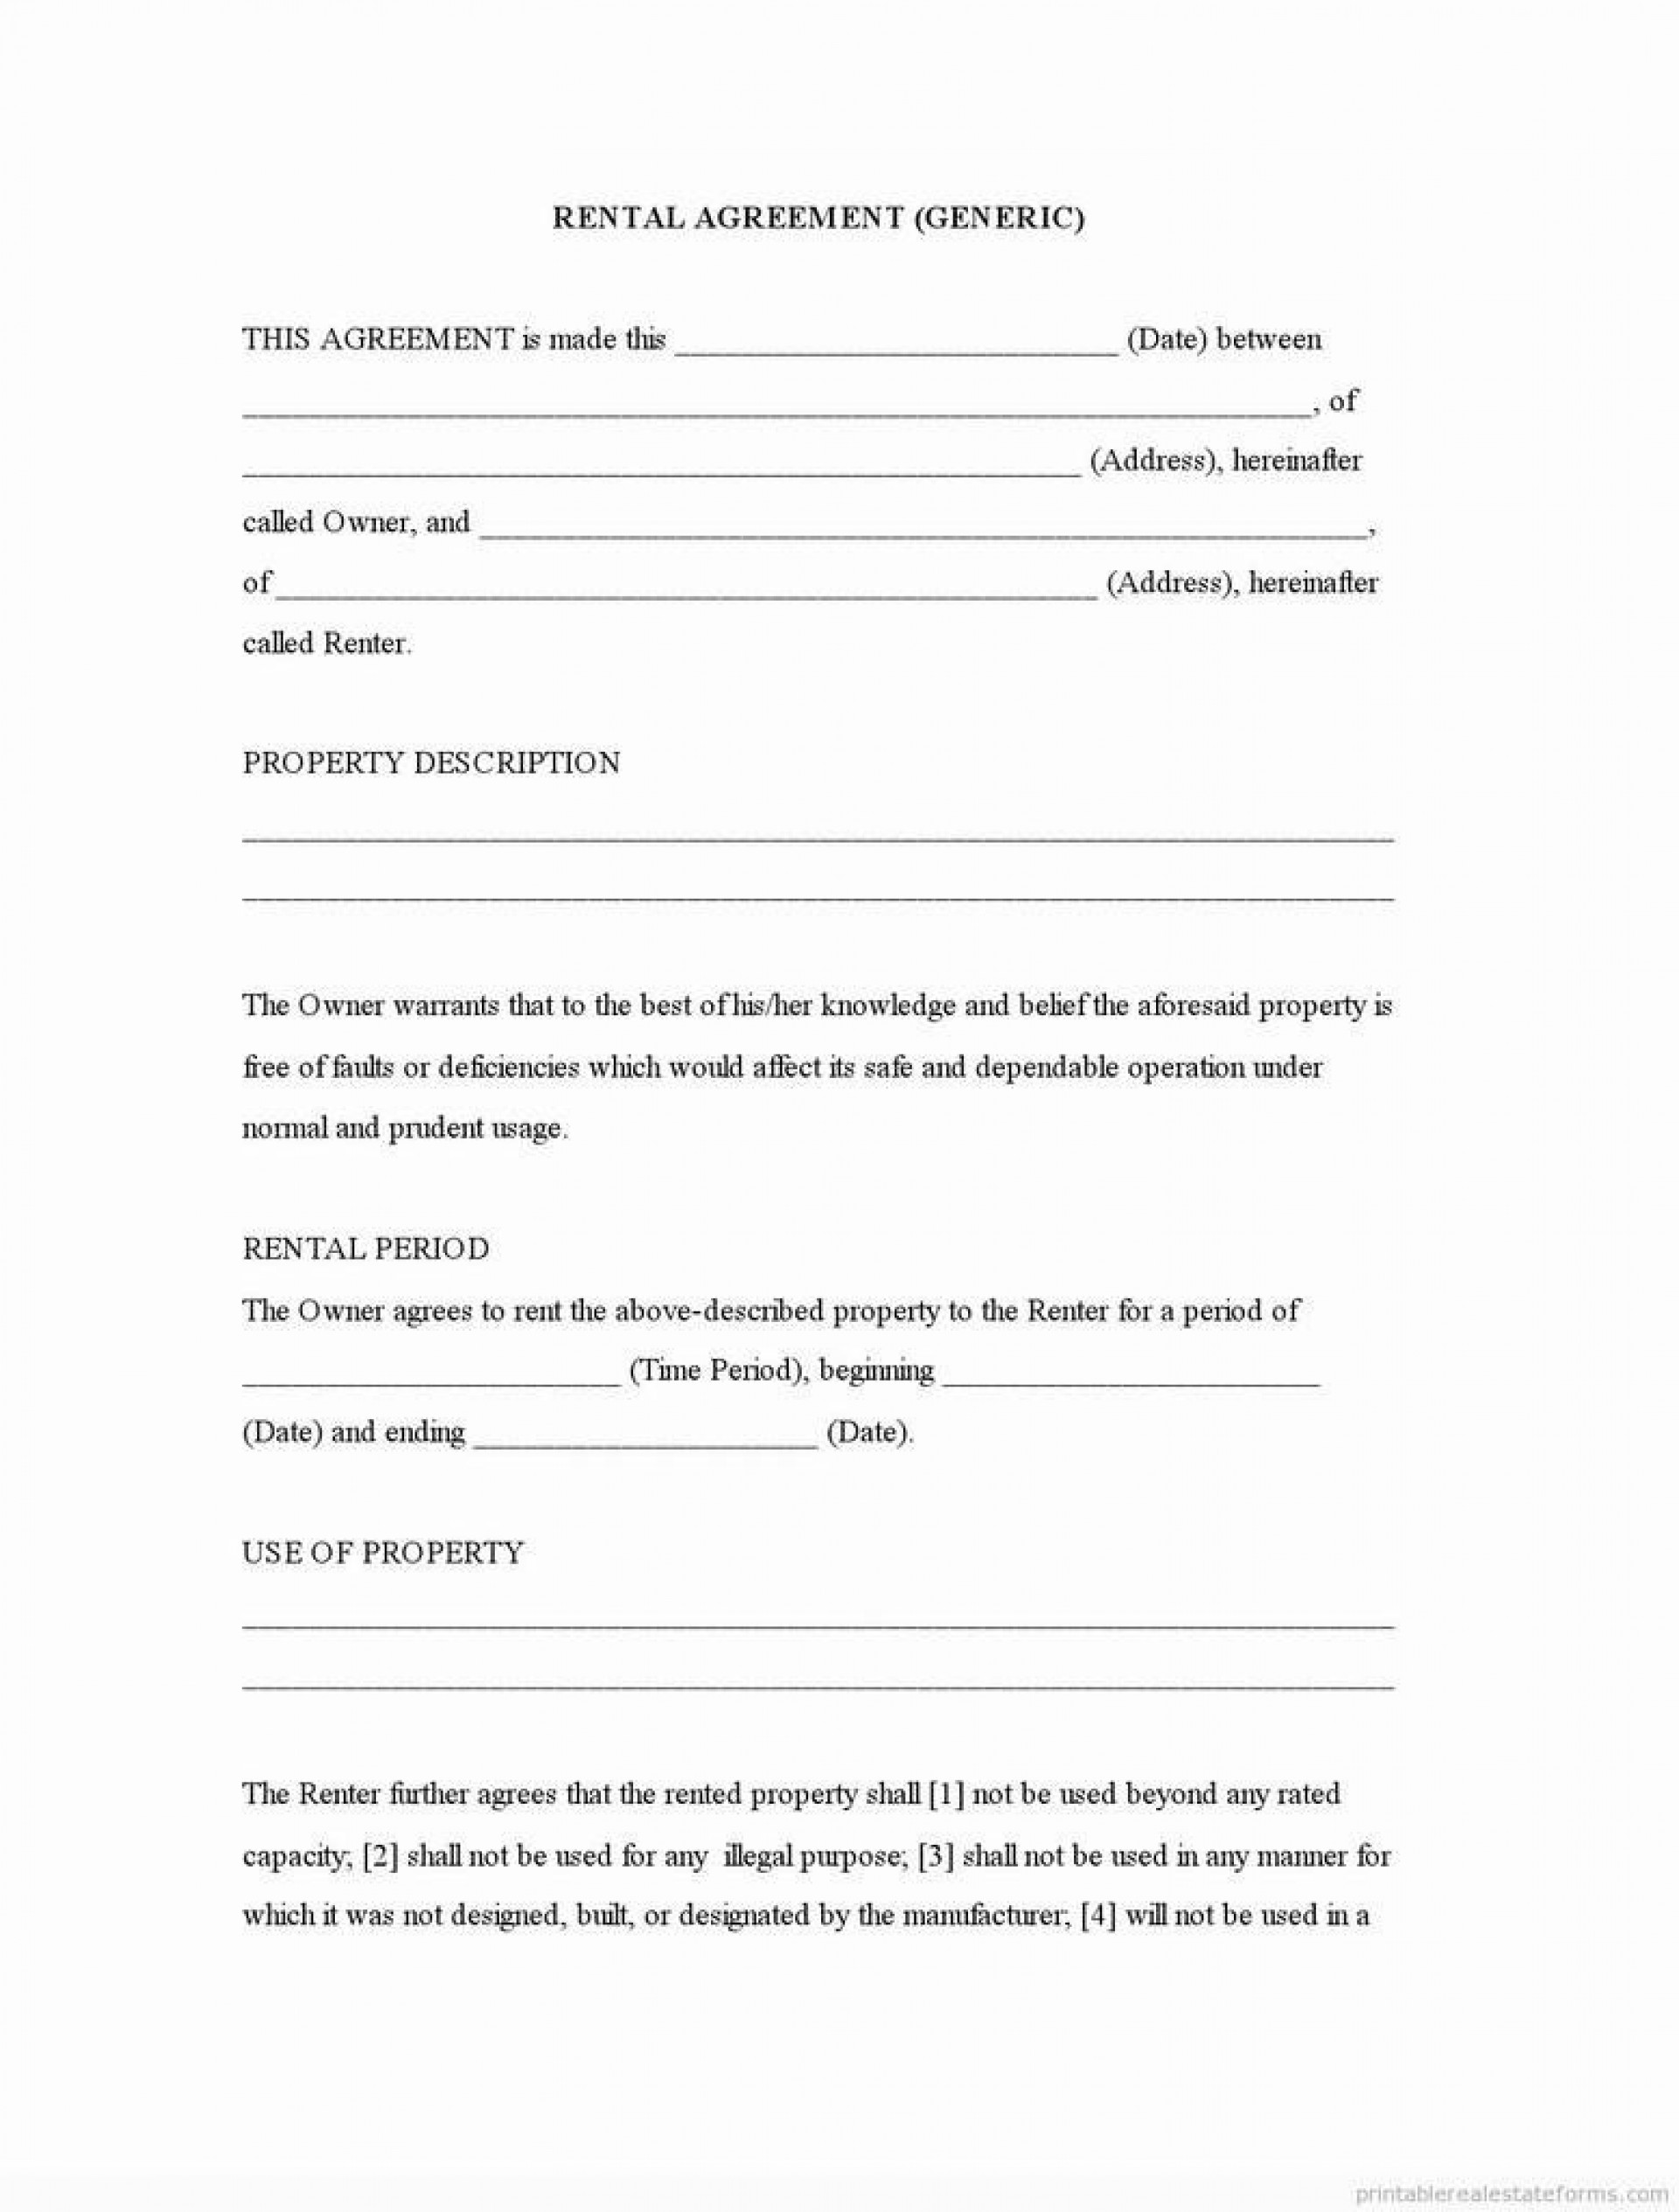 005 Amazing Generic Rental Lease Agreement Concept  Sample New Jersey California Pdf1920